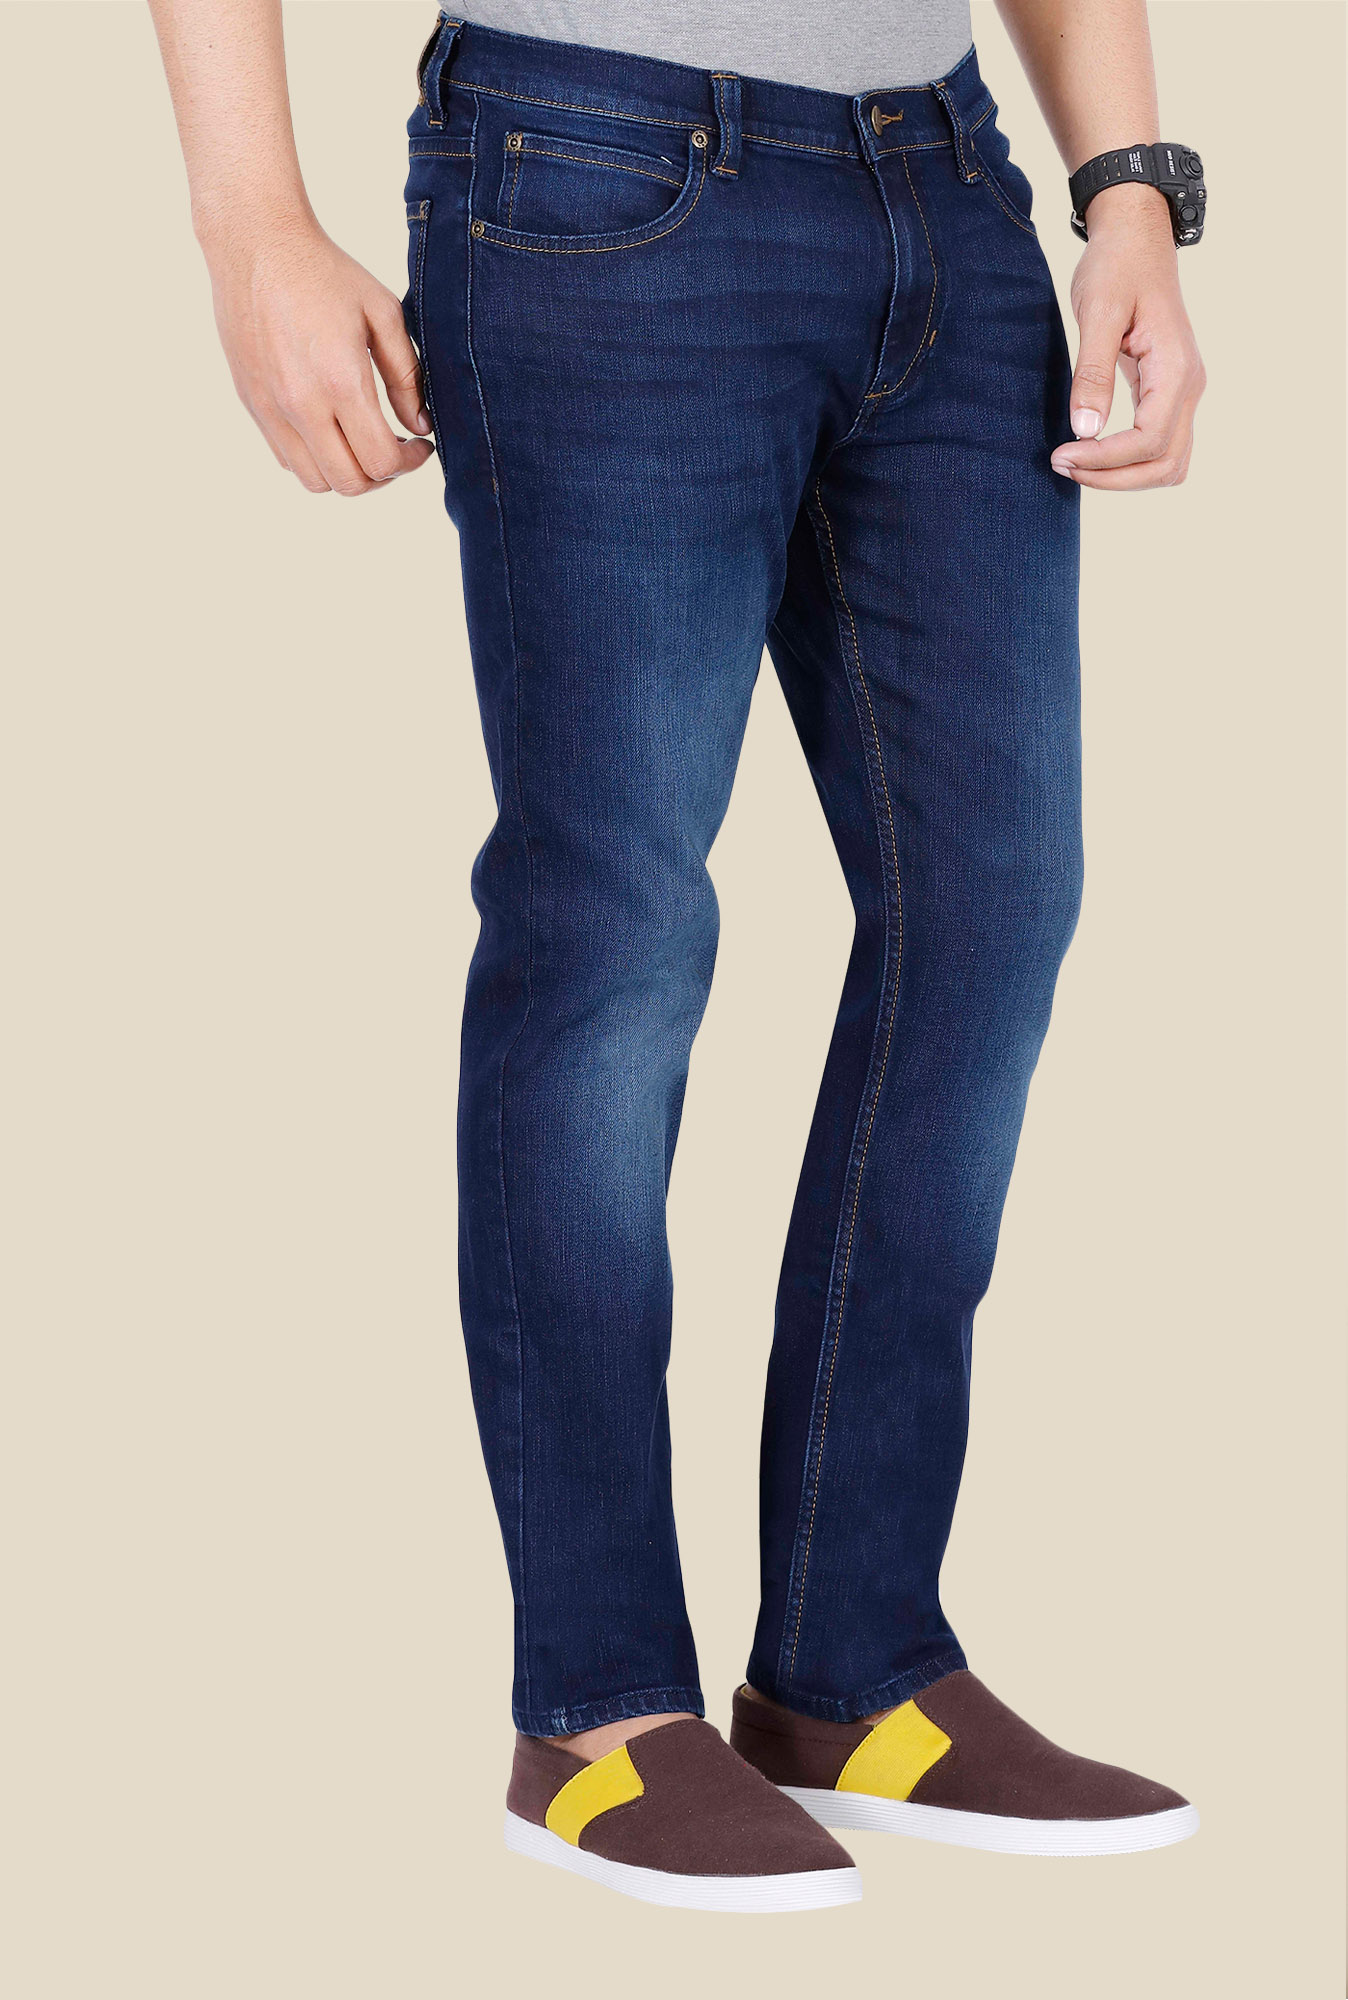 Lee Blue Mid Rise Denim Jeans